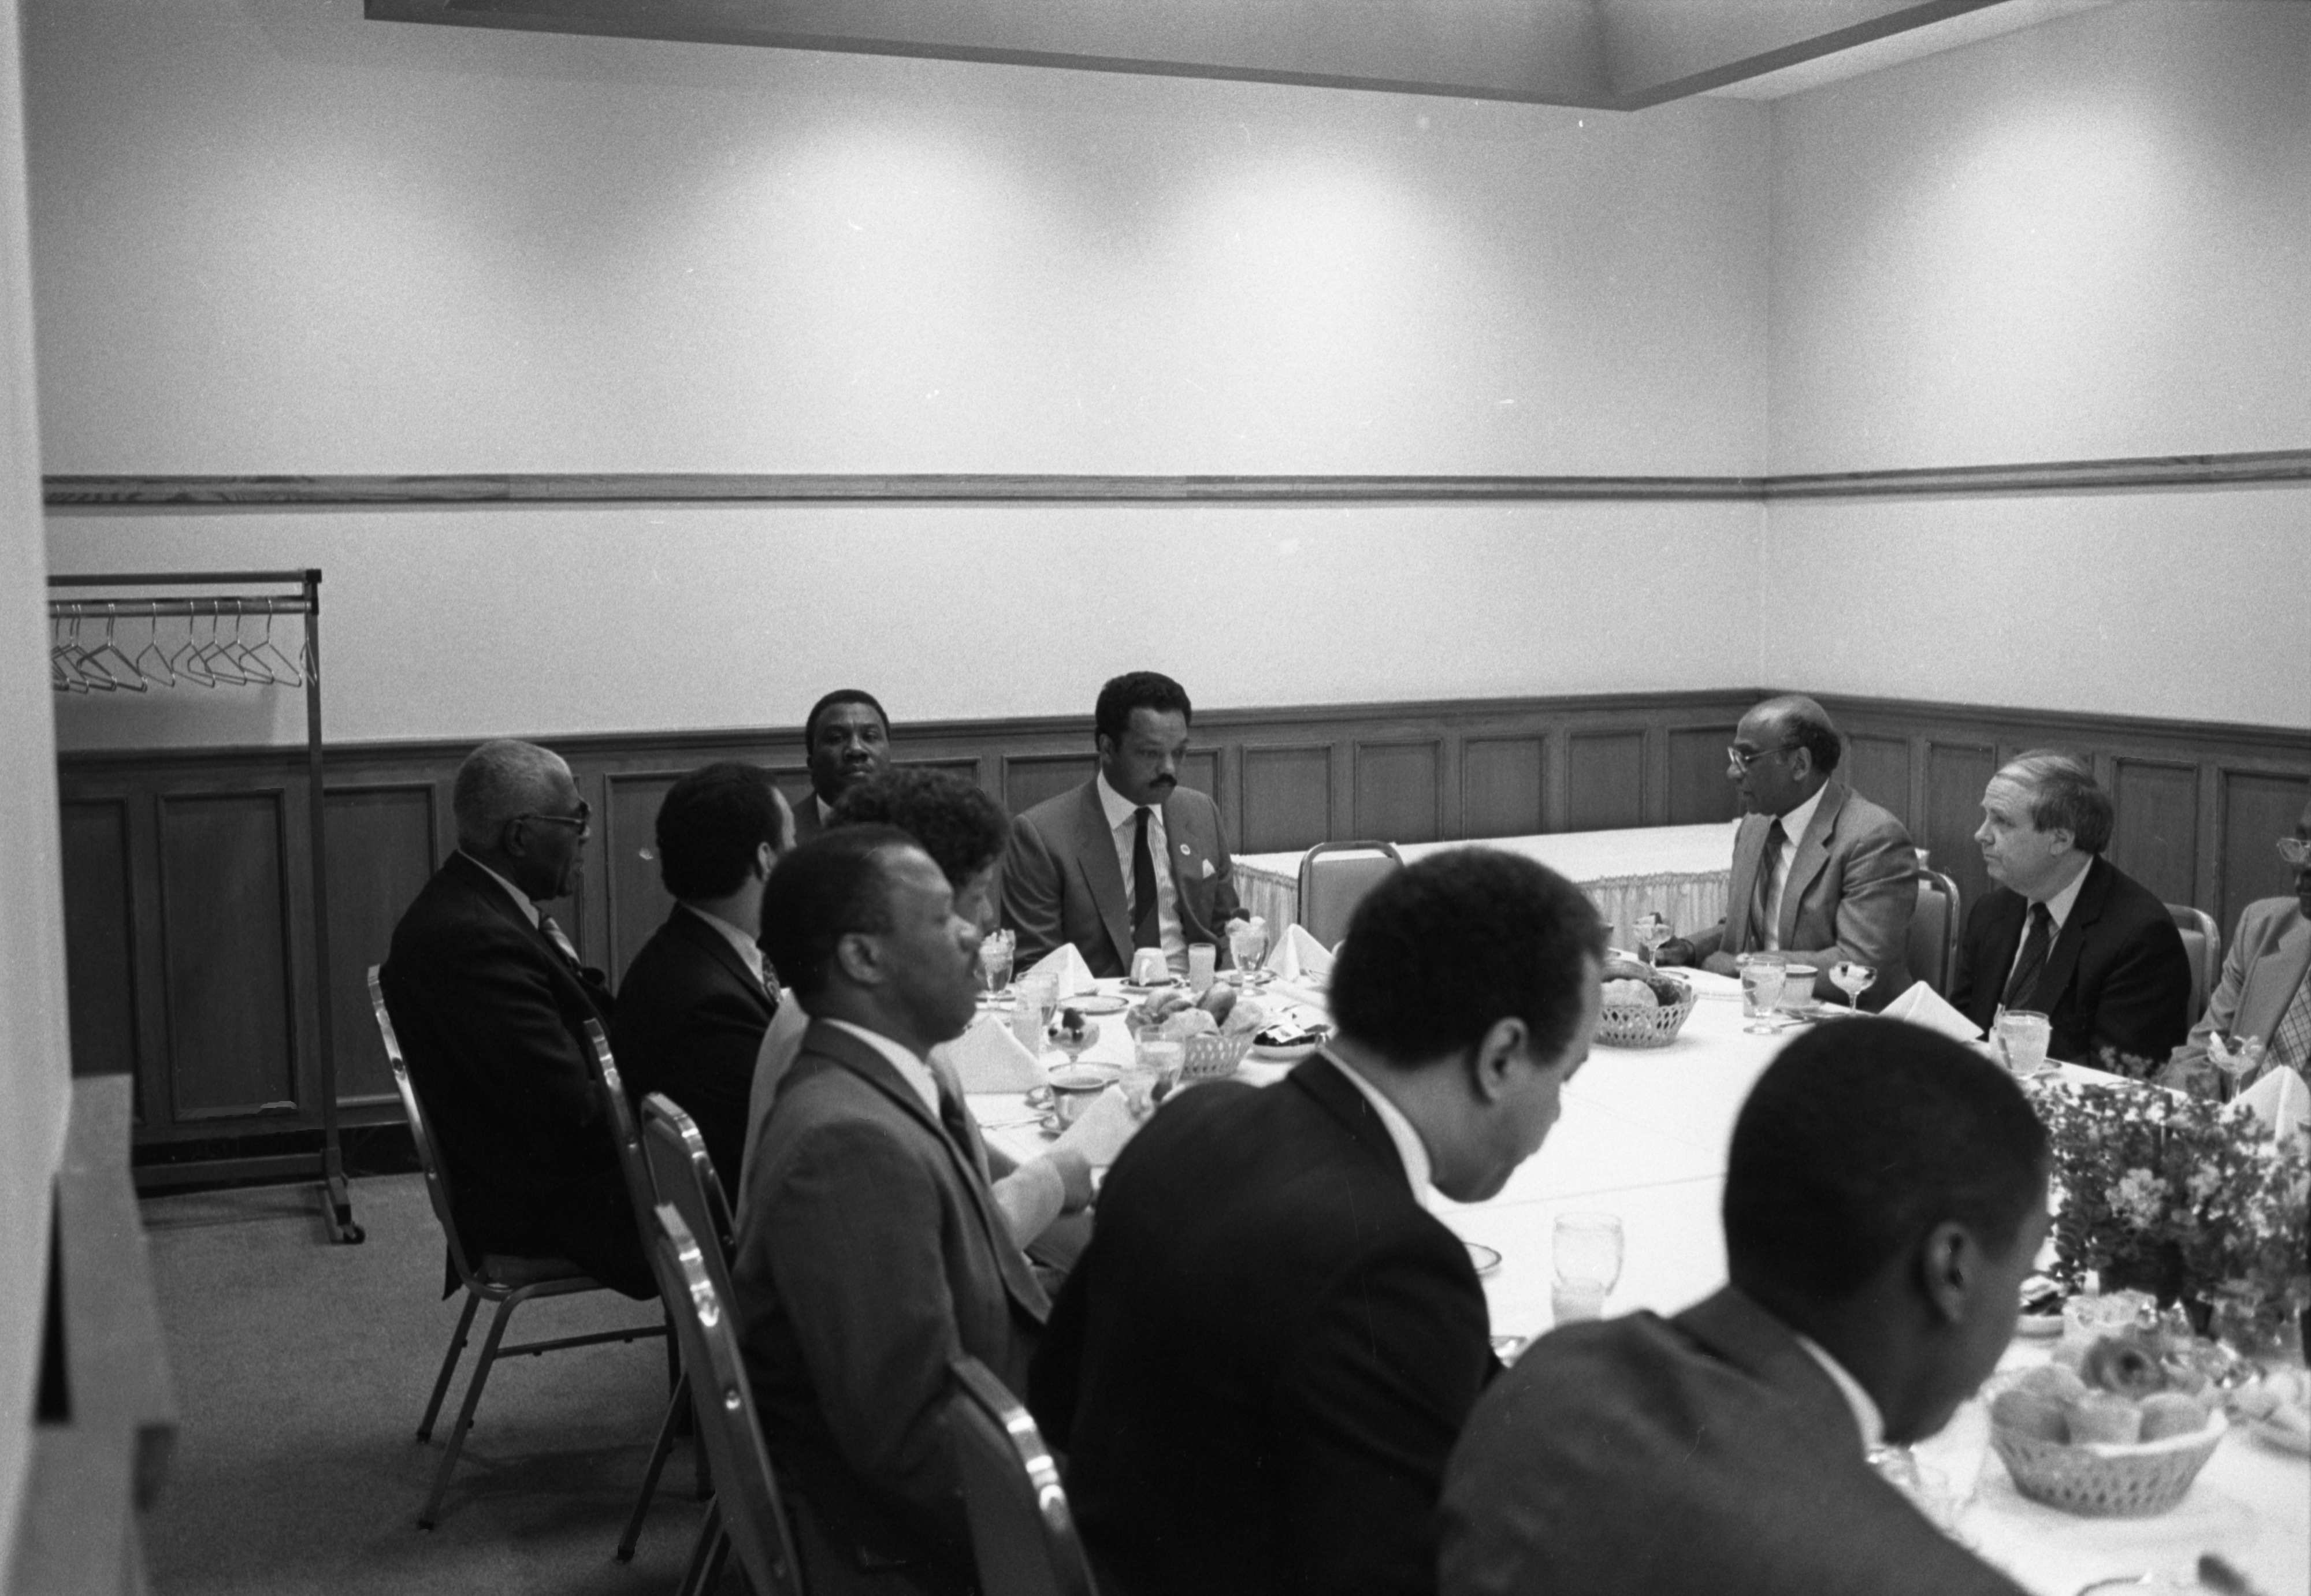 Rev. Jesse Jackson Meets With Local Ministers For Breakfast At The Michigan Union, March 23, 1987 image